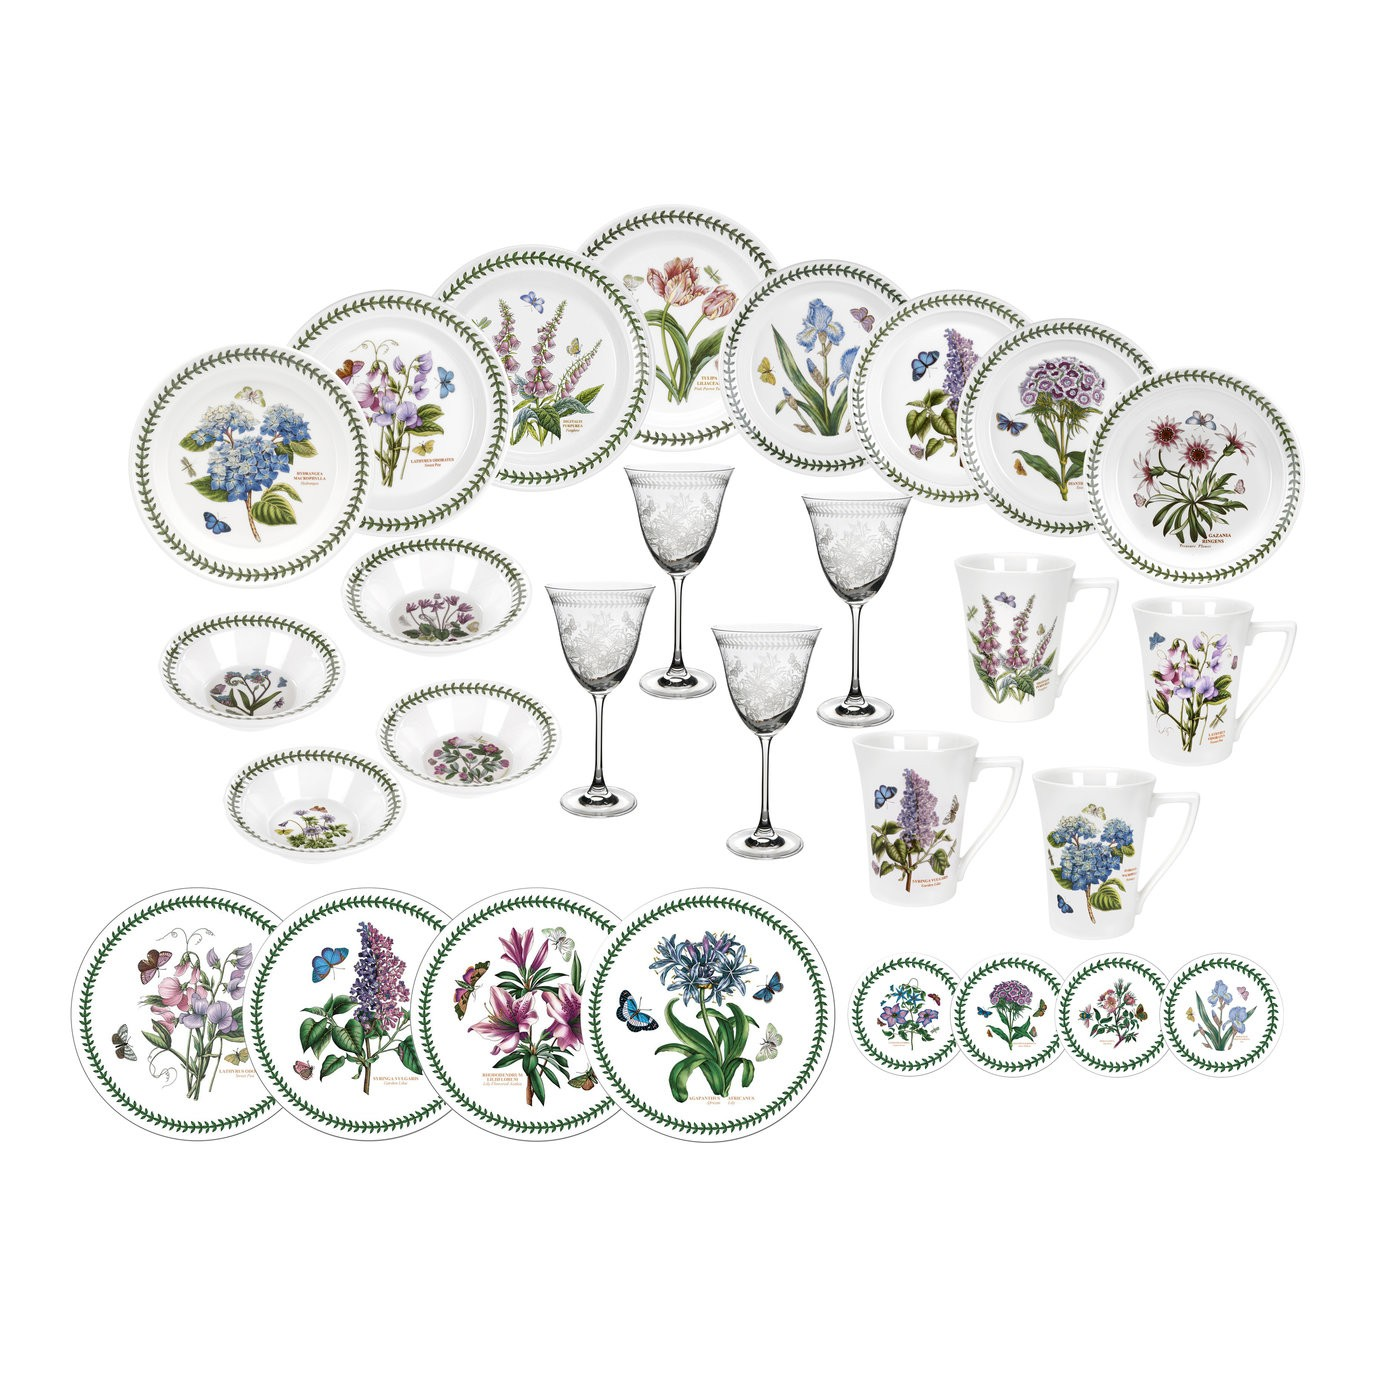 Portmeirion Botanic Garden 28 Piece Set.